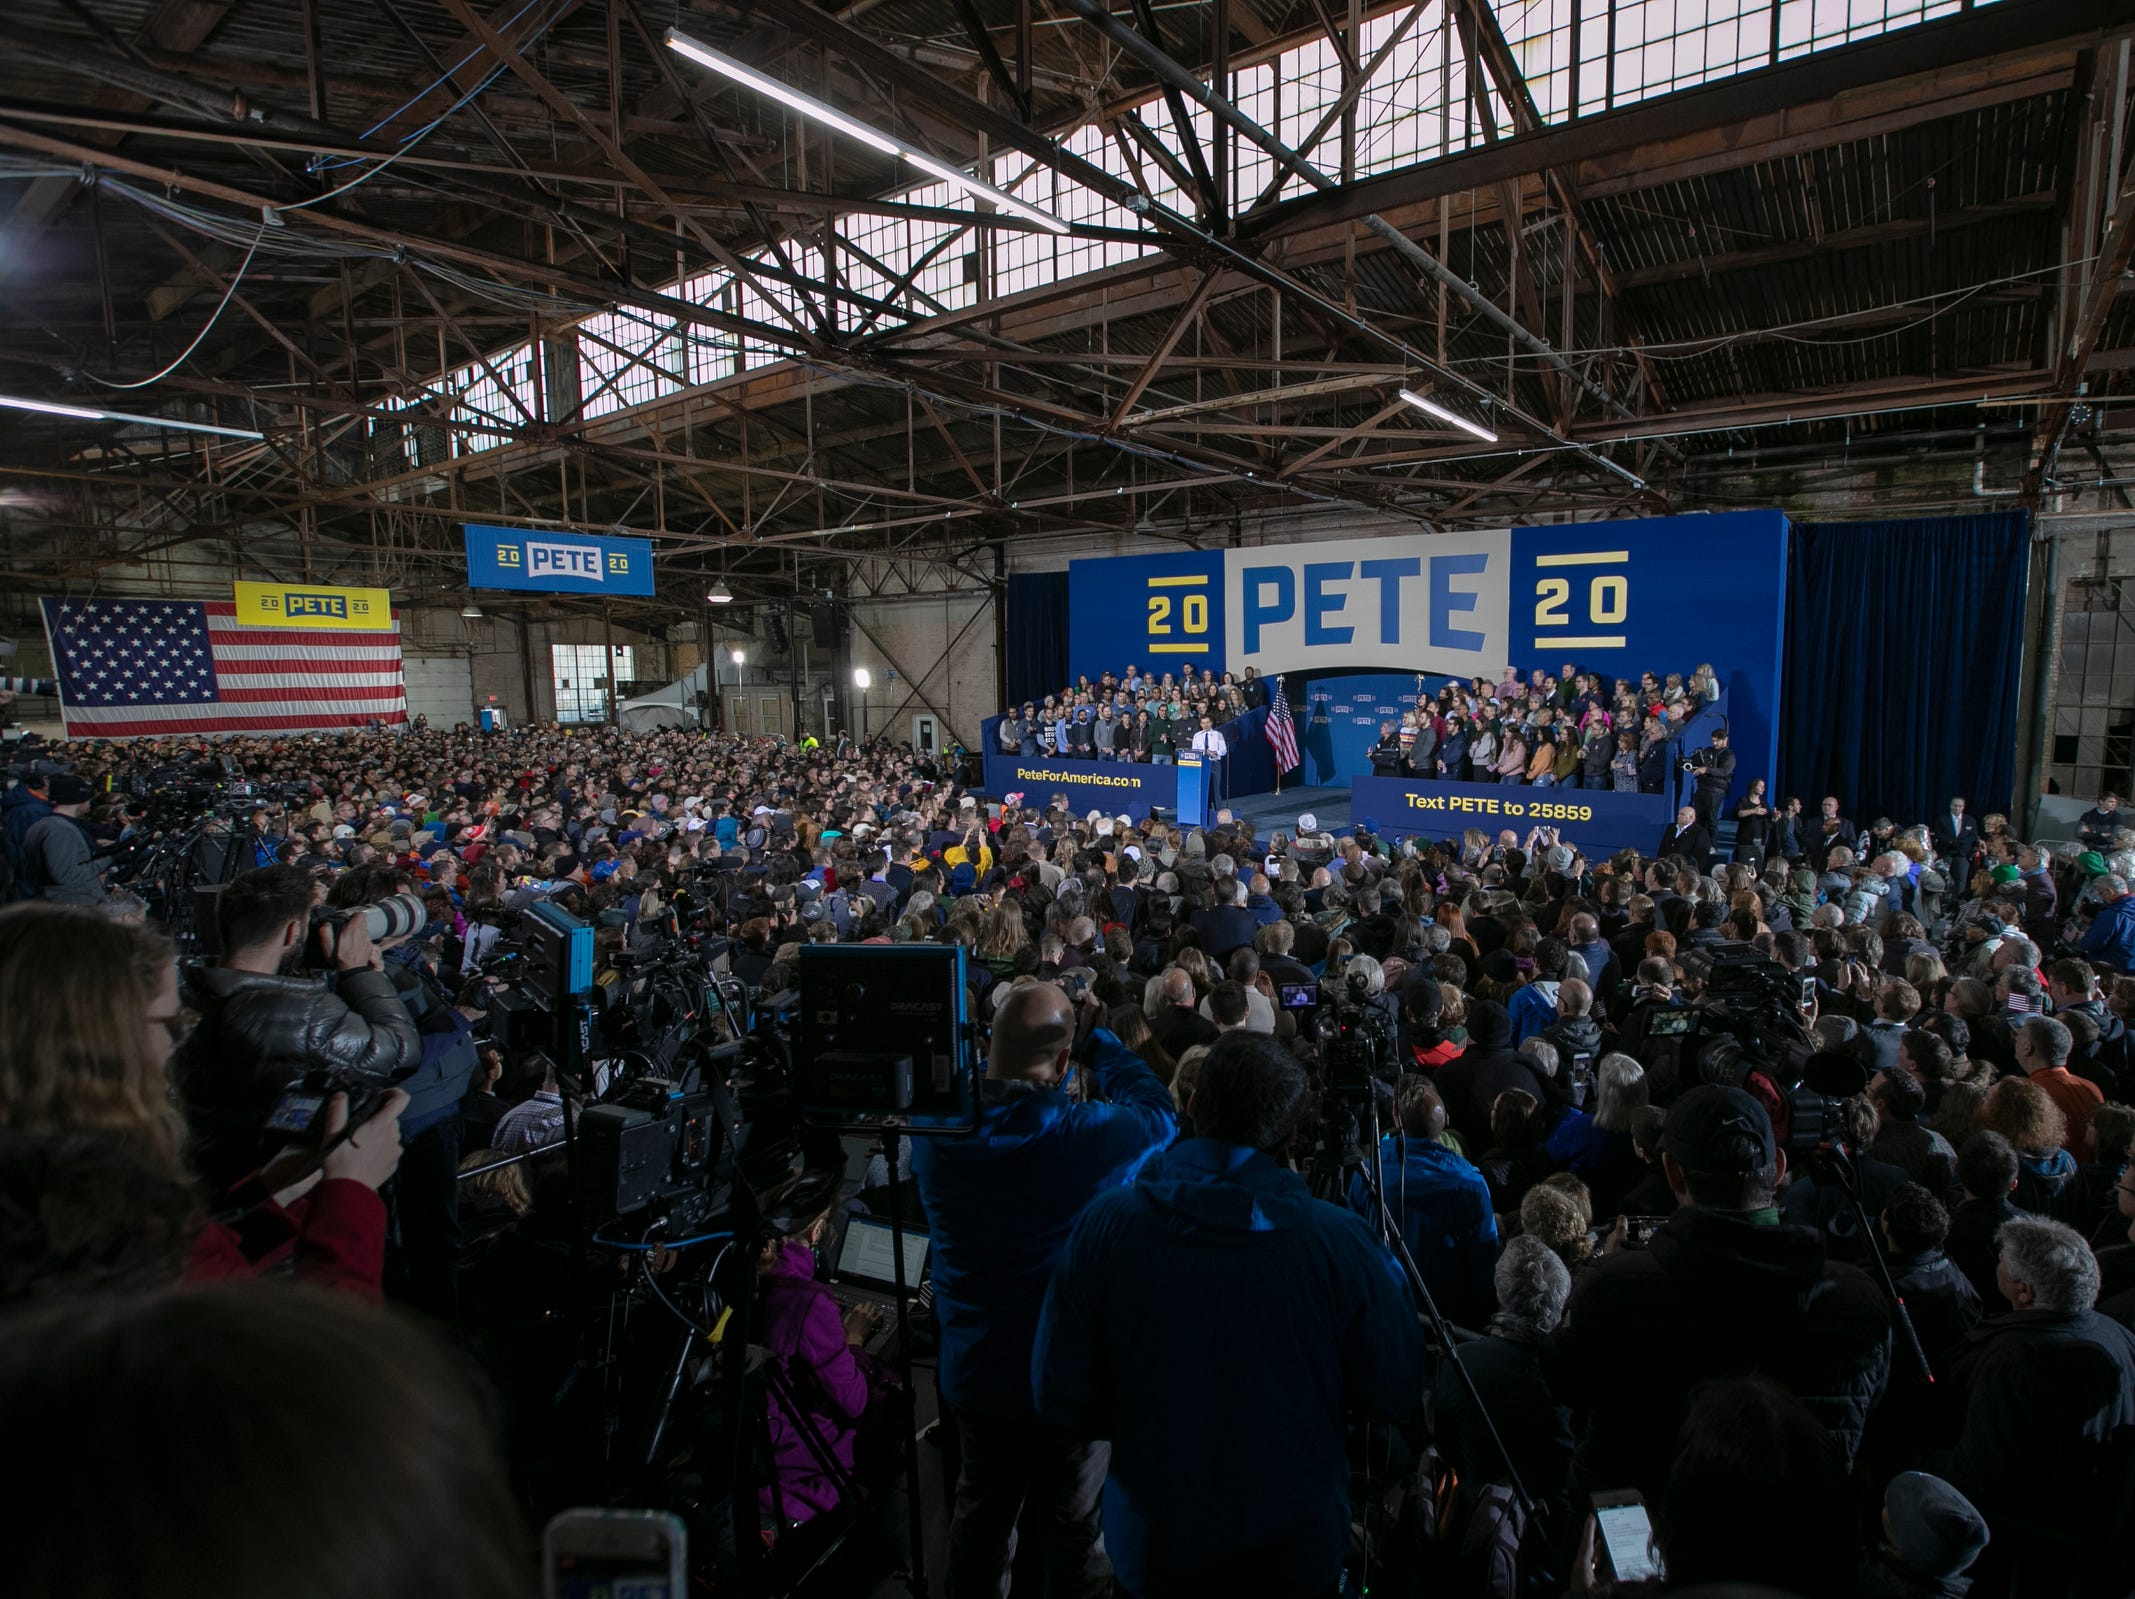 A rally for Pete Buttigieg, the Mayor of South Bend, who has announced that he is running for U.S. President, South Bend, Sunday, April 14, 2019.